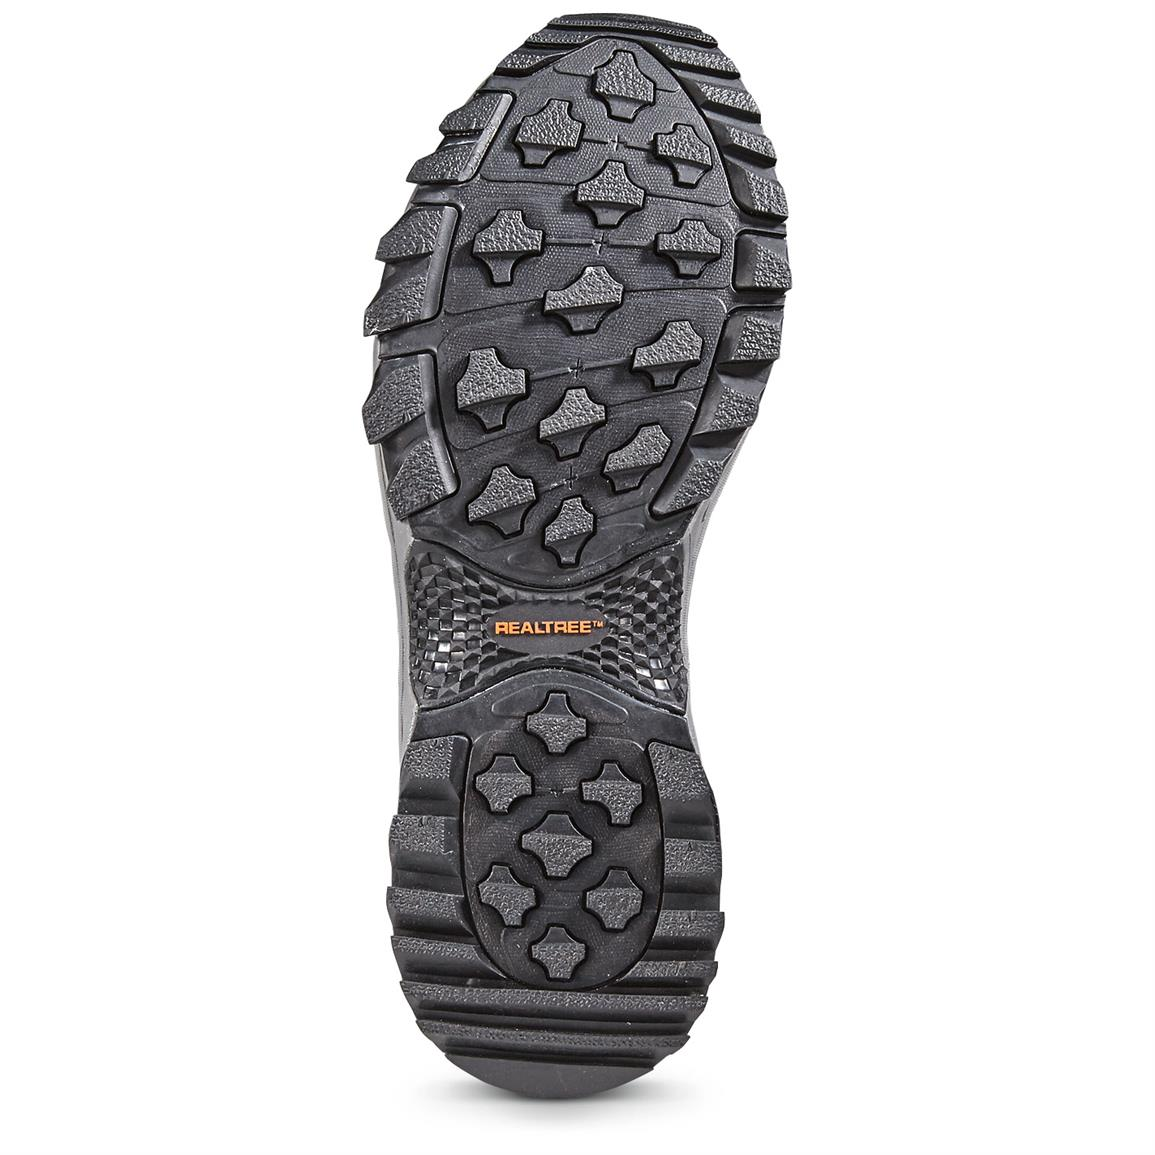 High-traction, non-marking rubber outsole